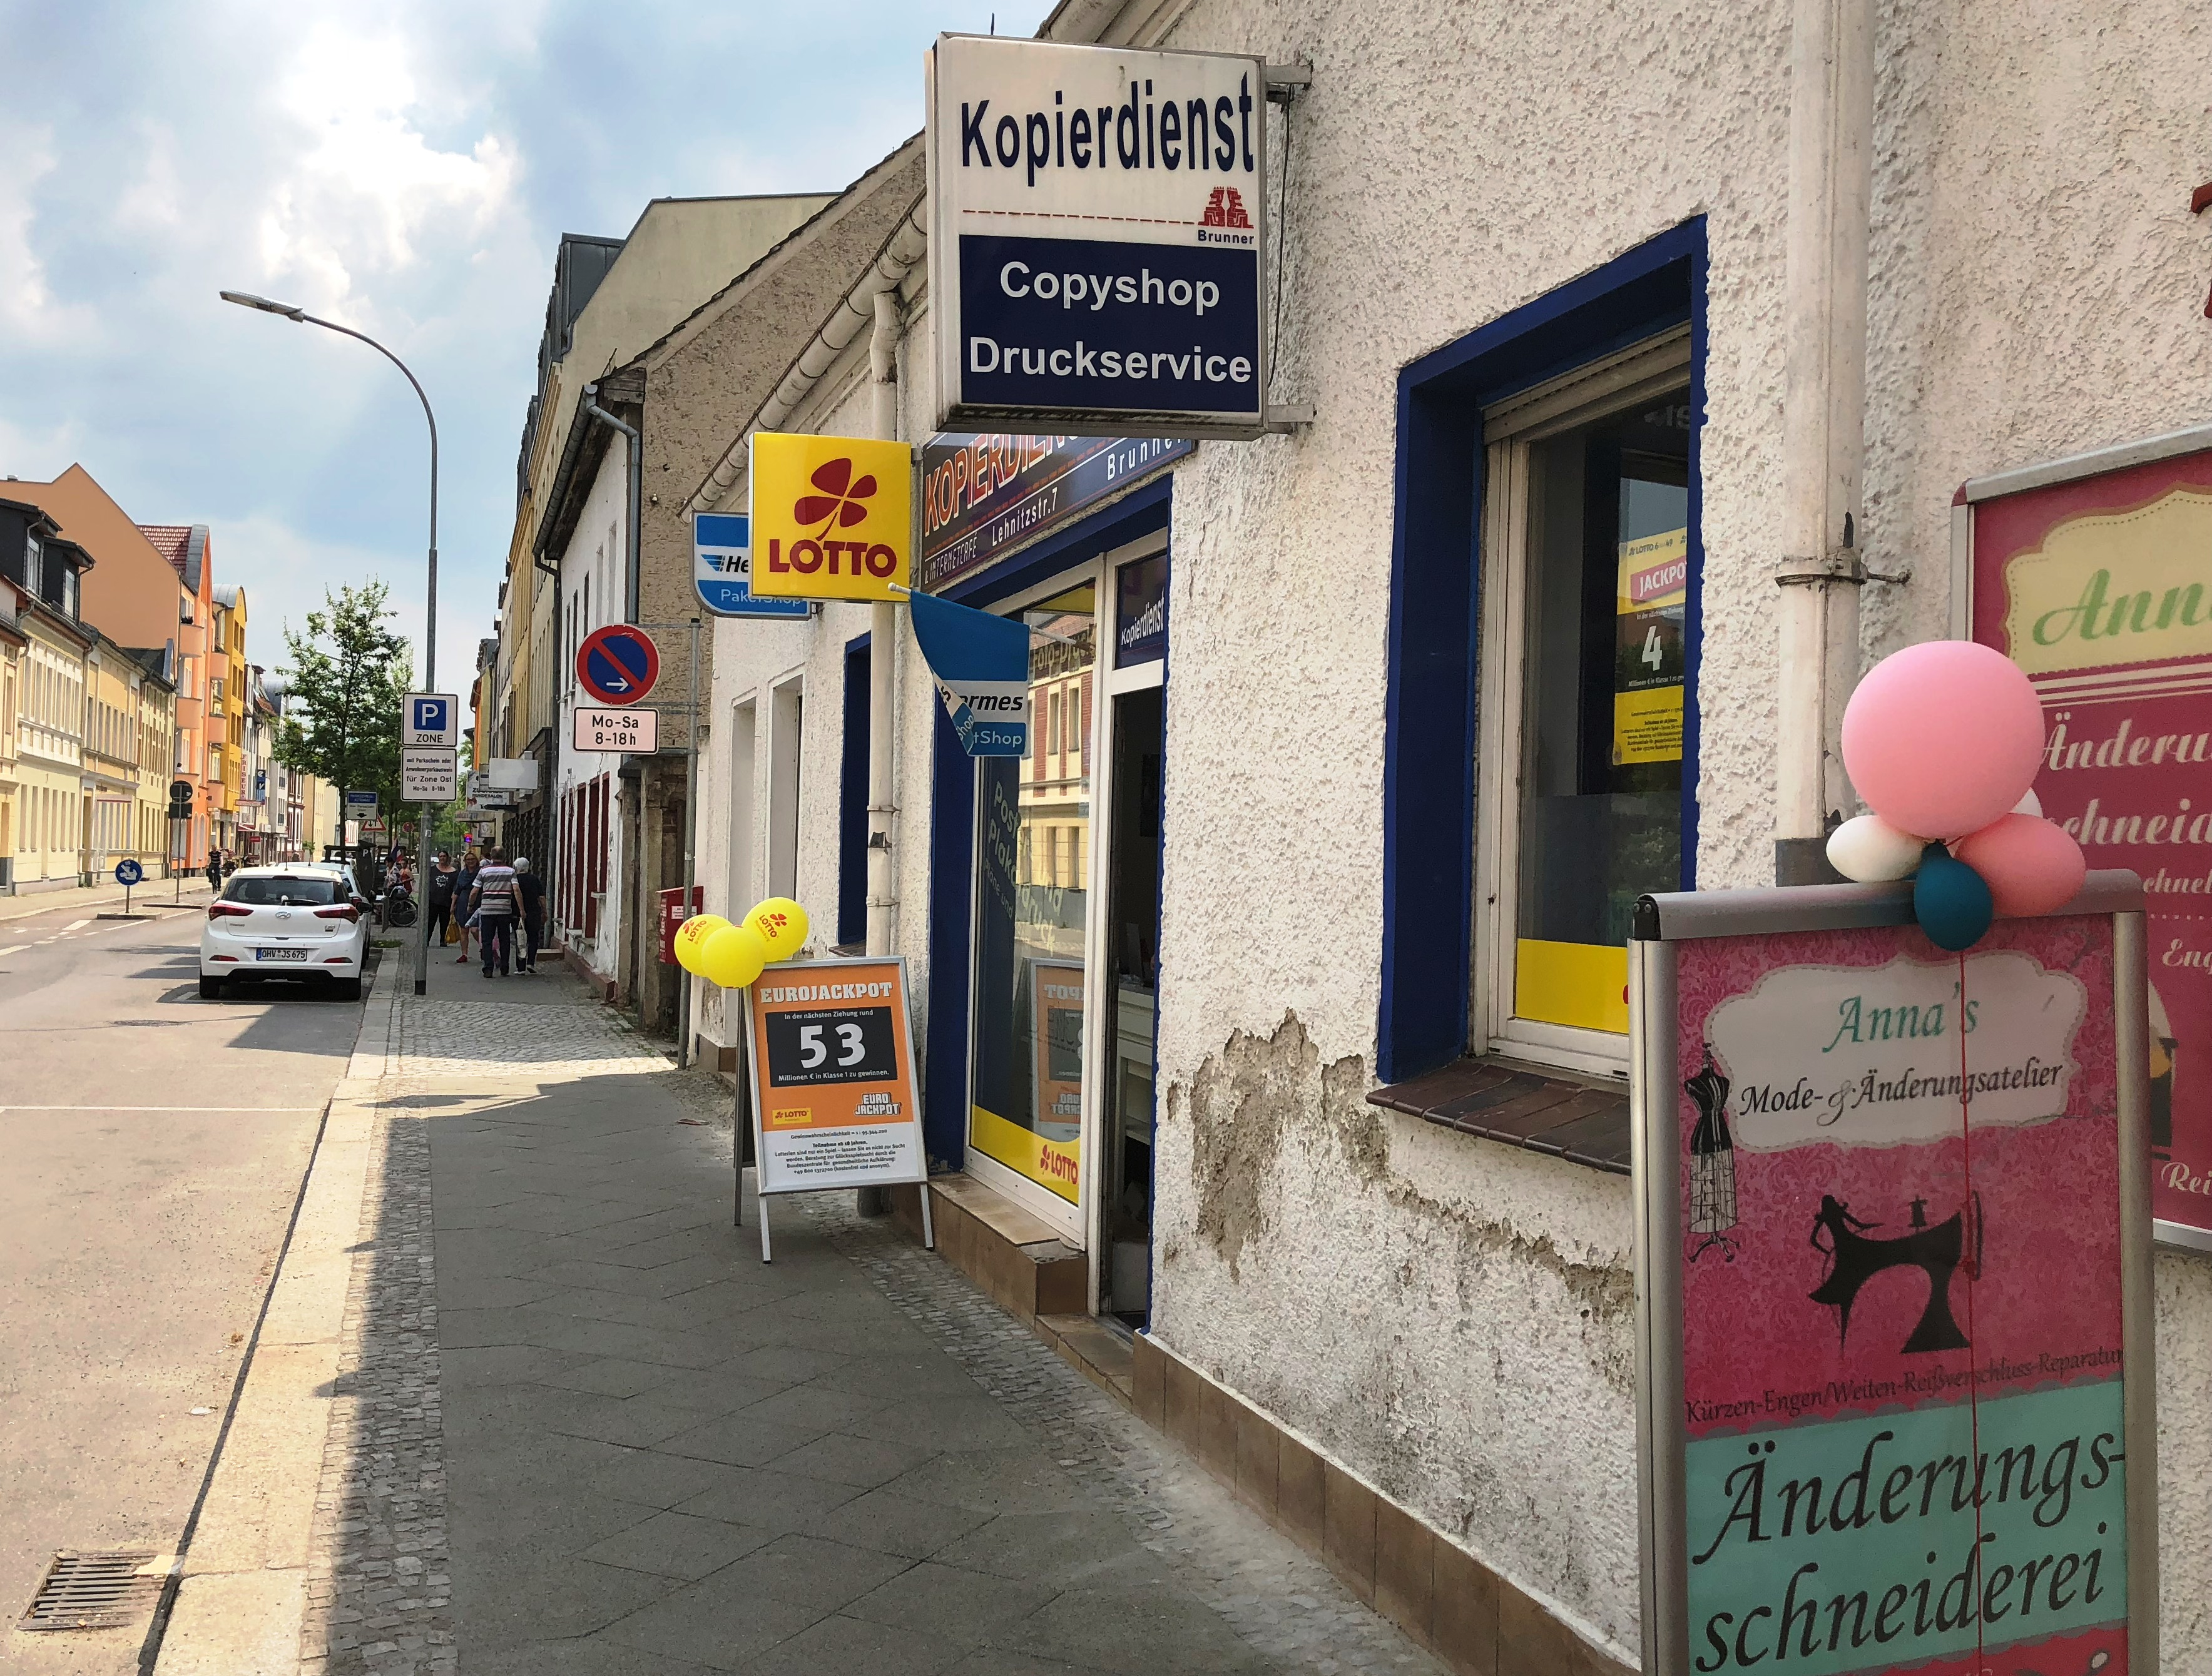 Kopierdienst Brunner & Internetcafé/Lotto